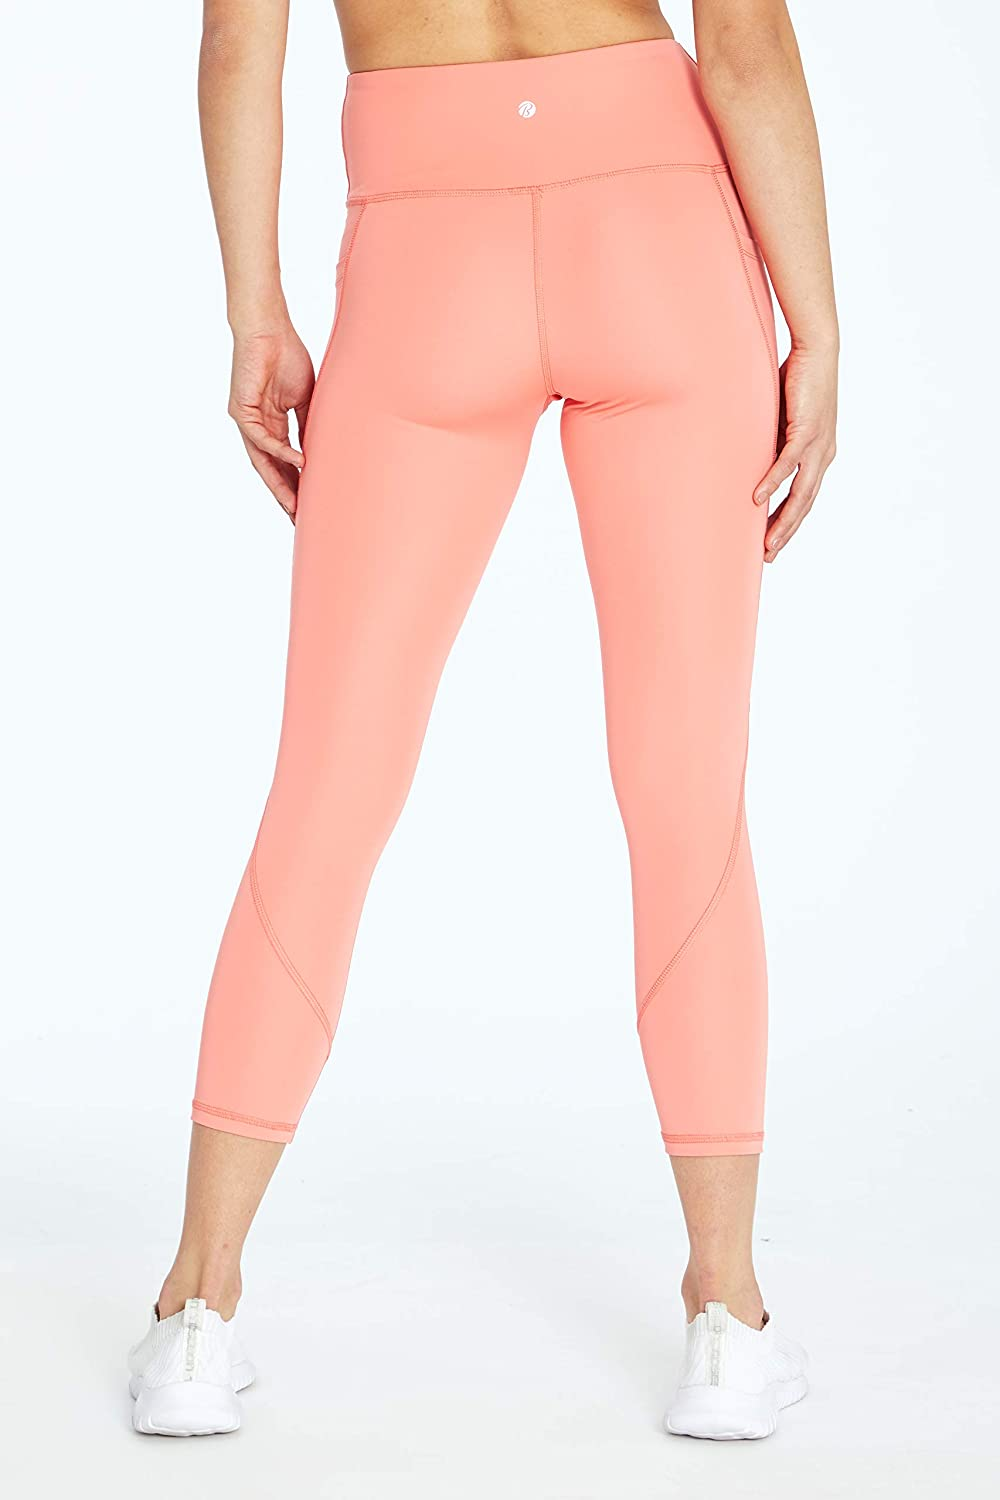 Bally Total Fitness Womens Kimmy High Rise Mid-Calf Legging : Clothing